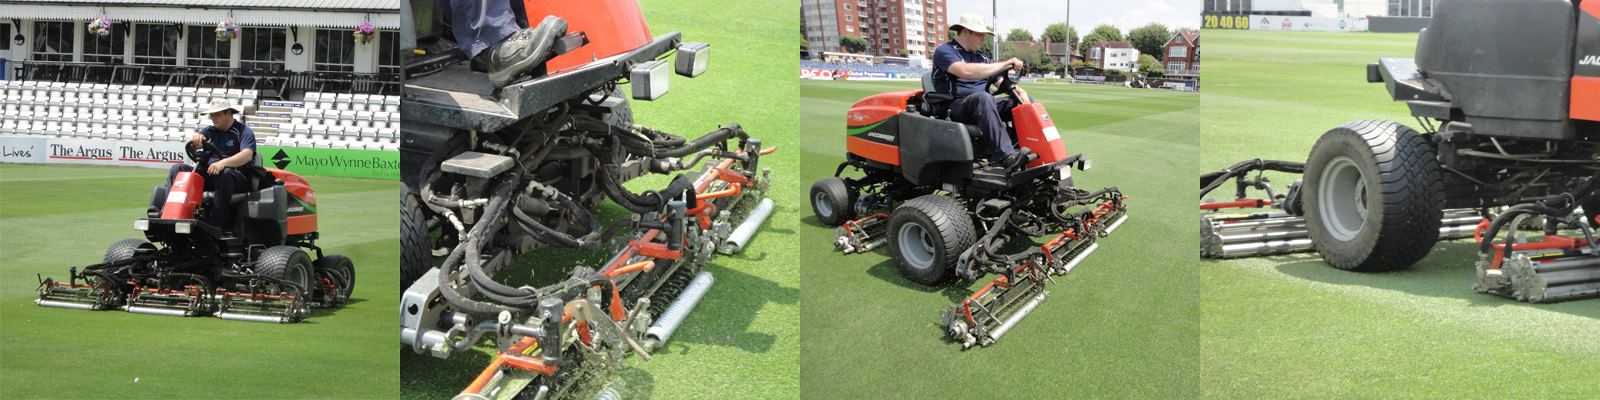 ATT TMSystem – Advanced Systems for Professional Turf Maintenance